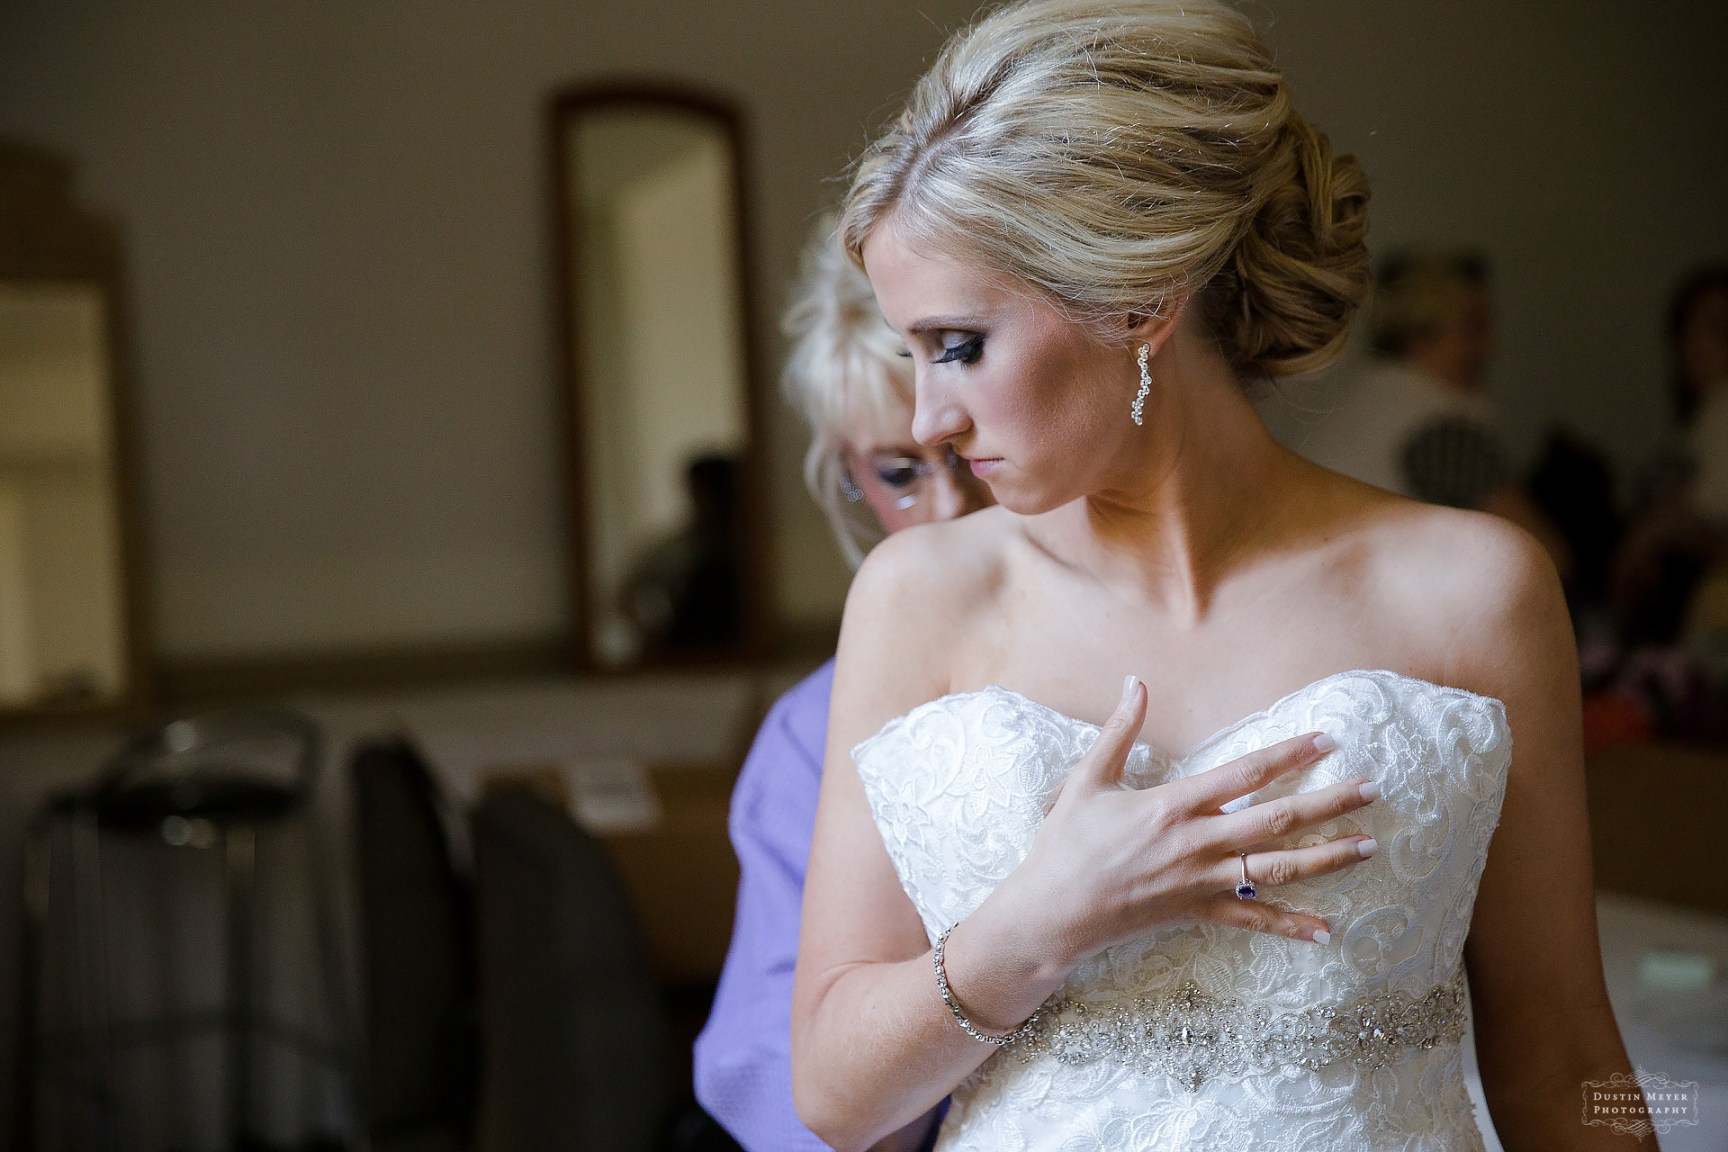 wedding day getting ready photo of bride and her mother in the bridal suite putting her strapless bridal wedding gown on